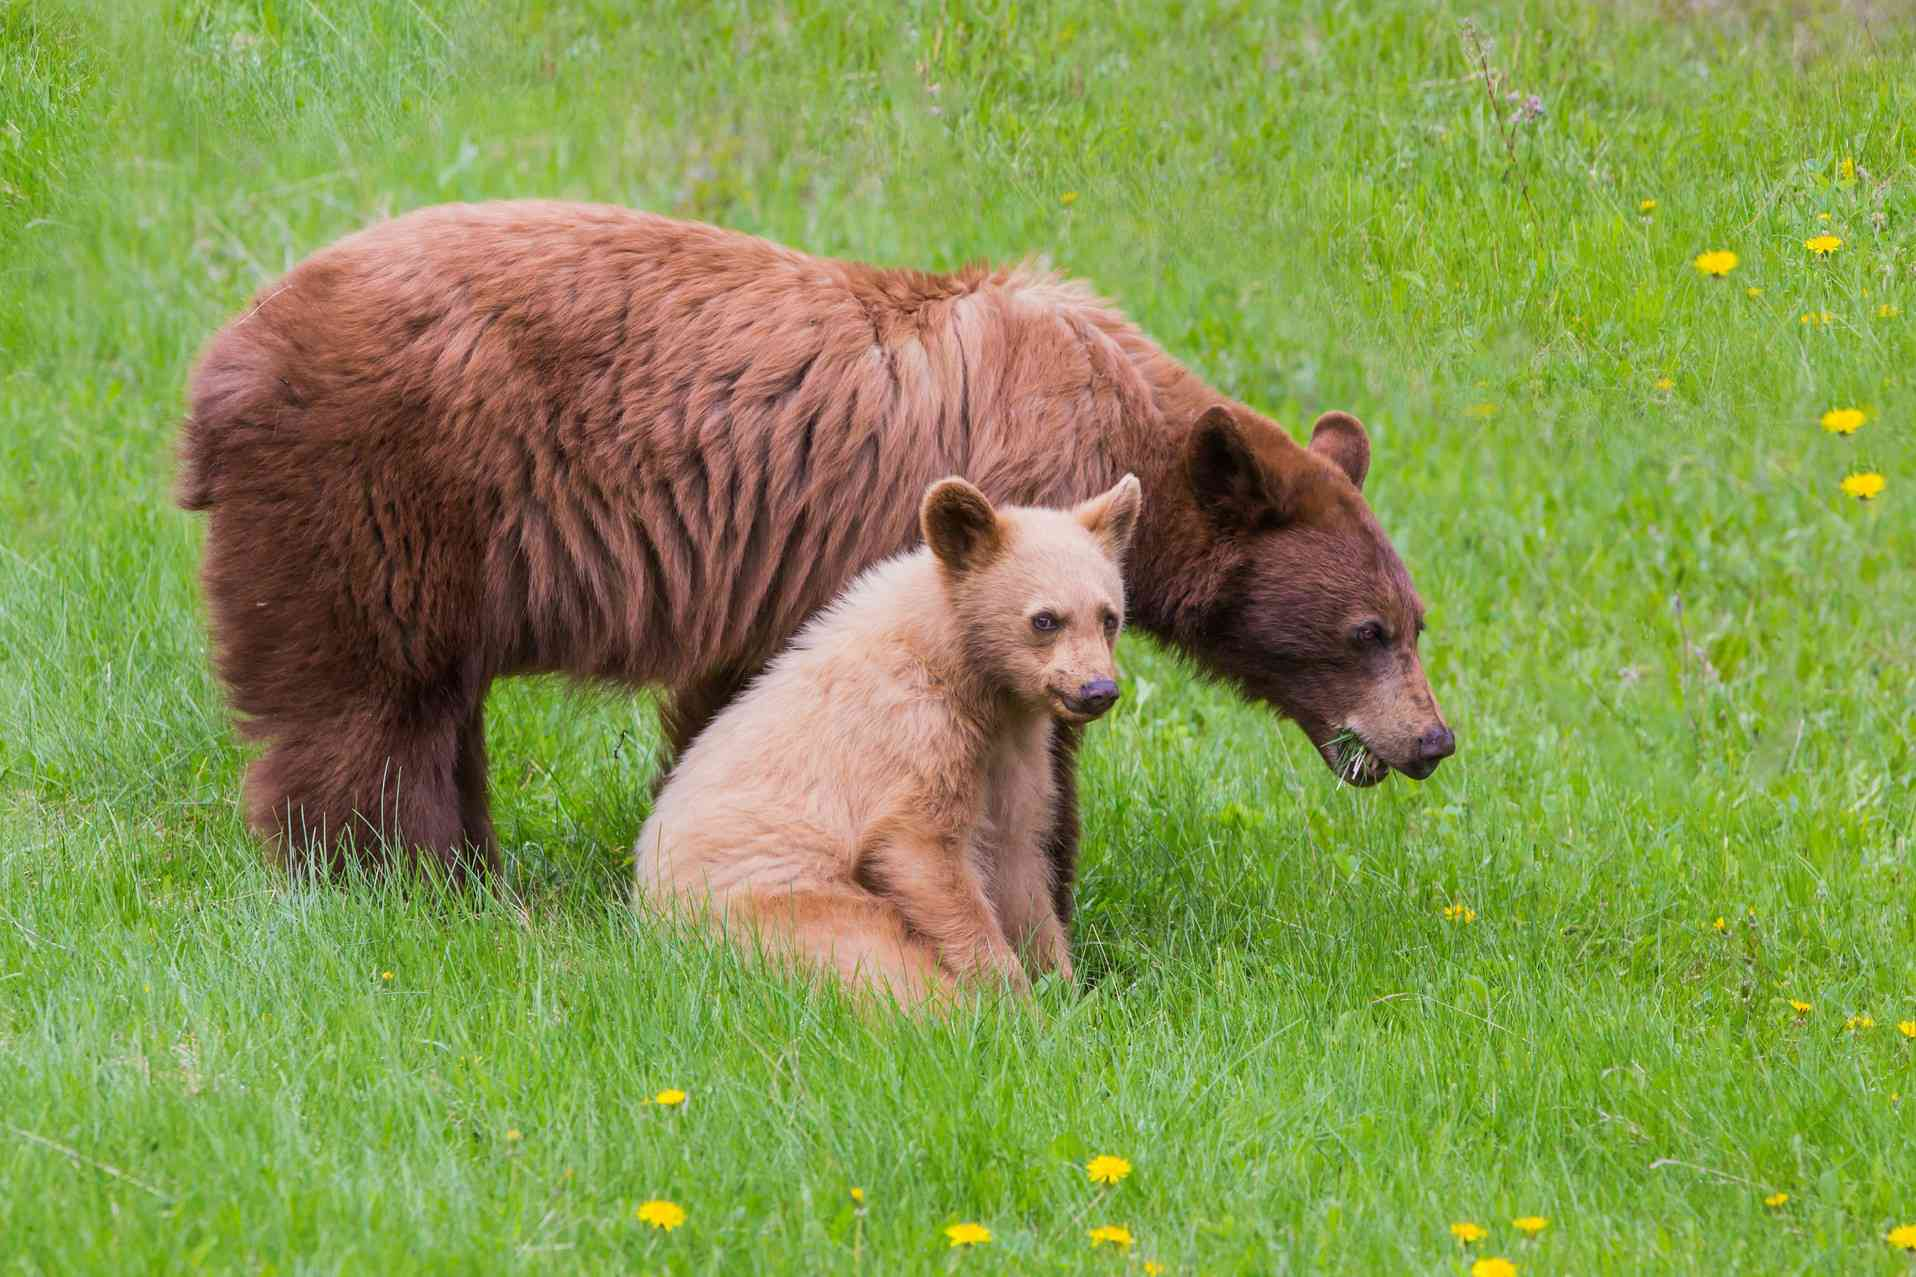 cinnamon-colored black bear with blond cub side by side in field with dandelions